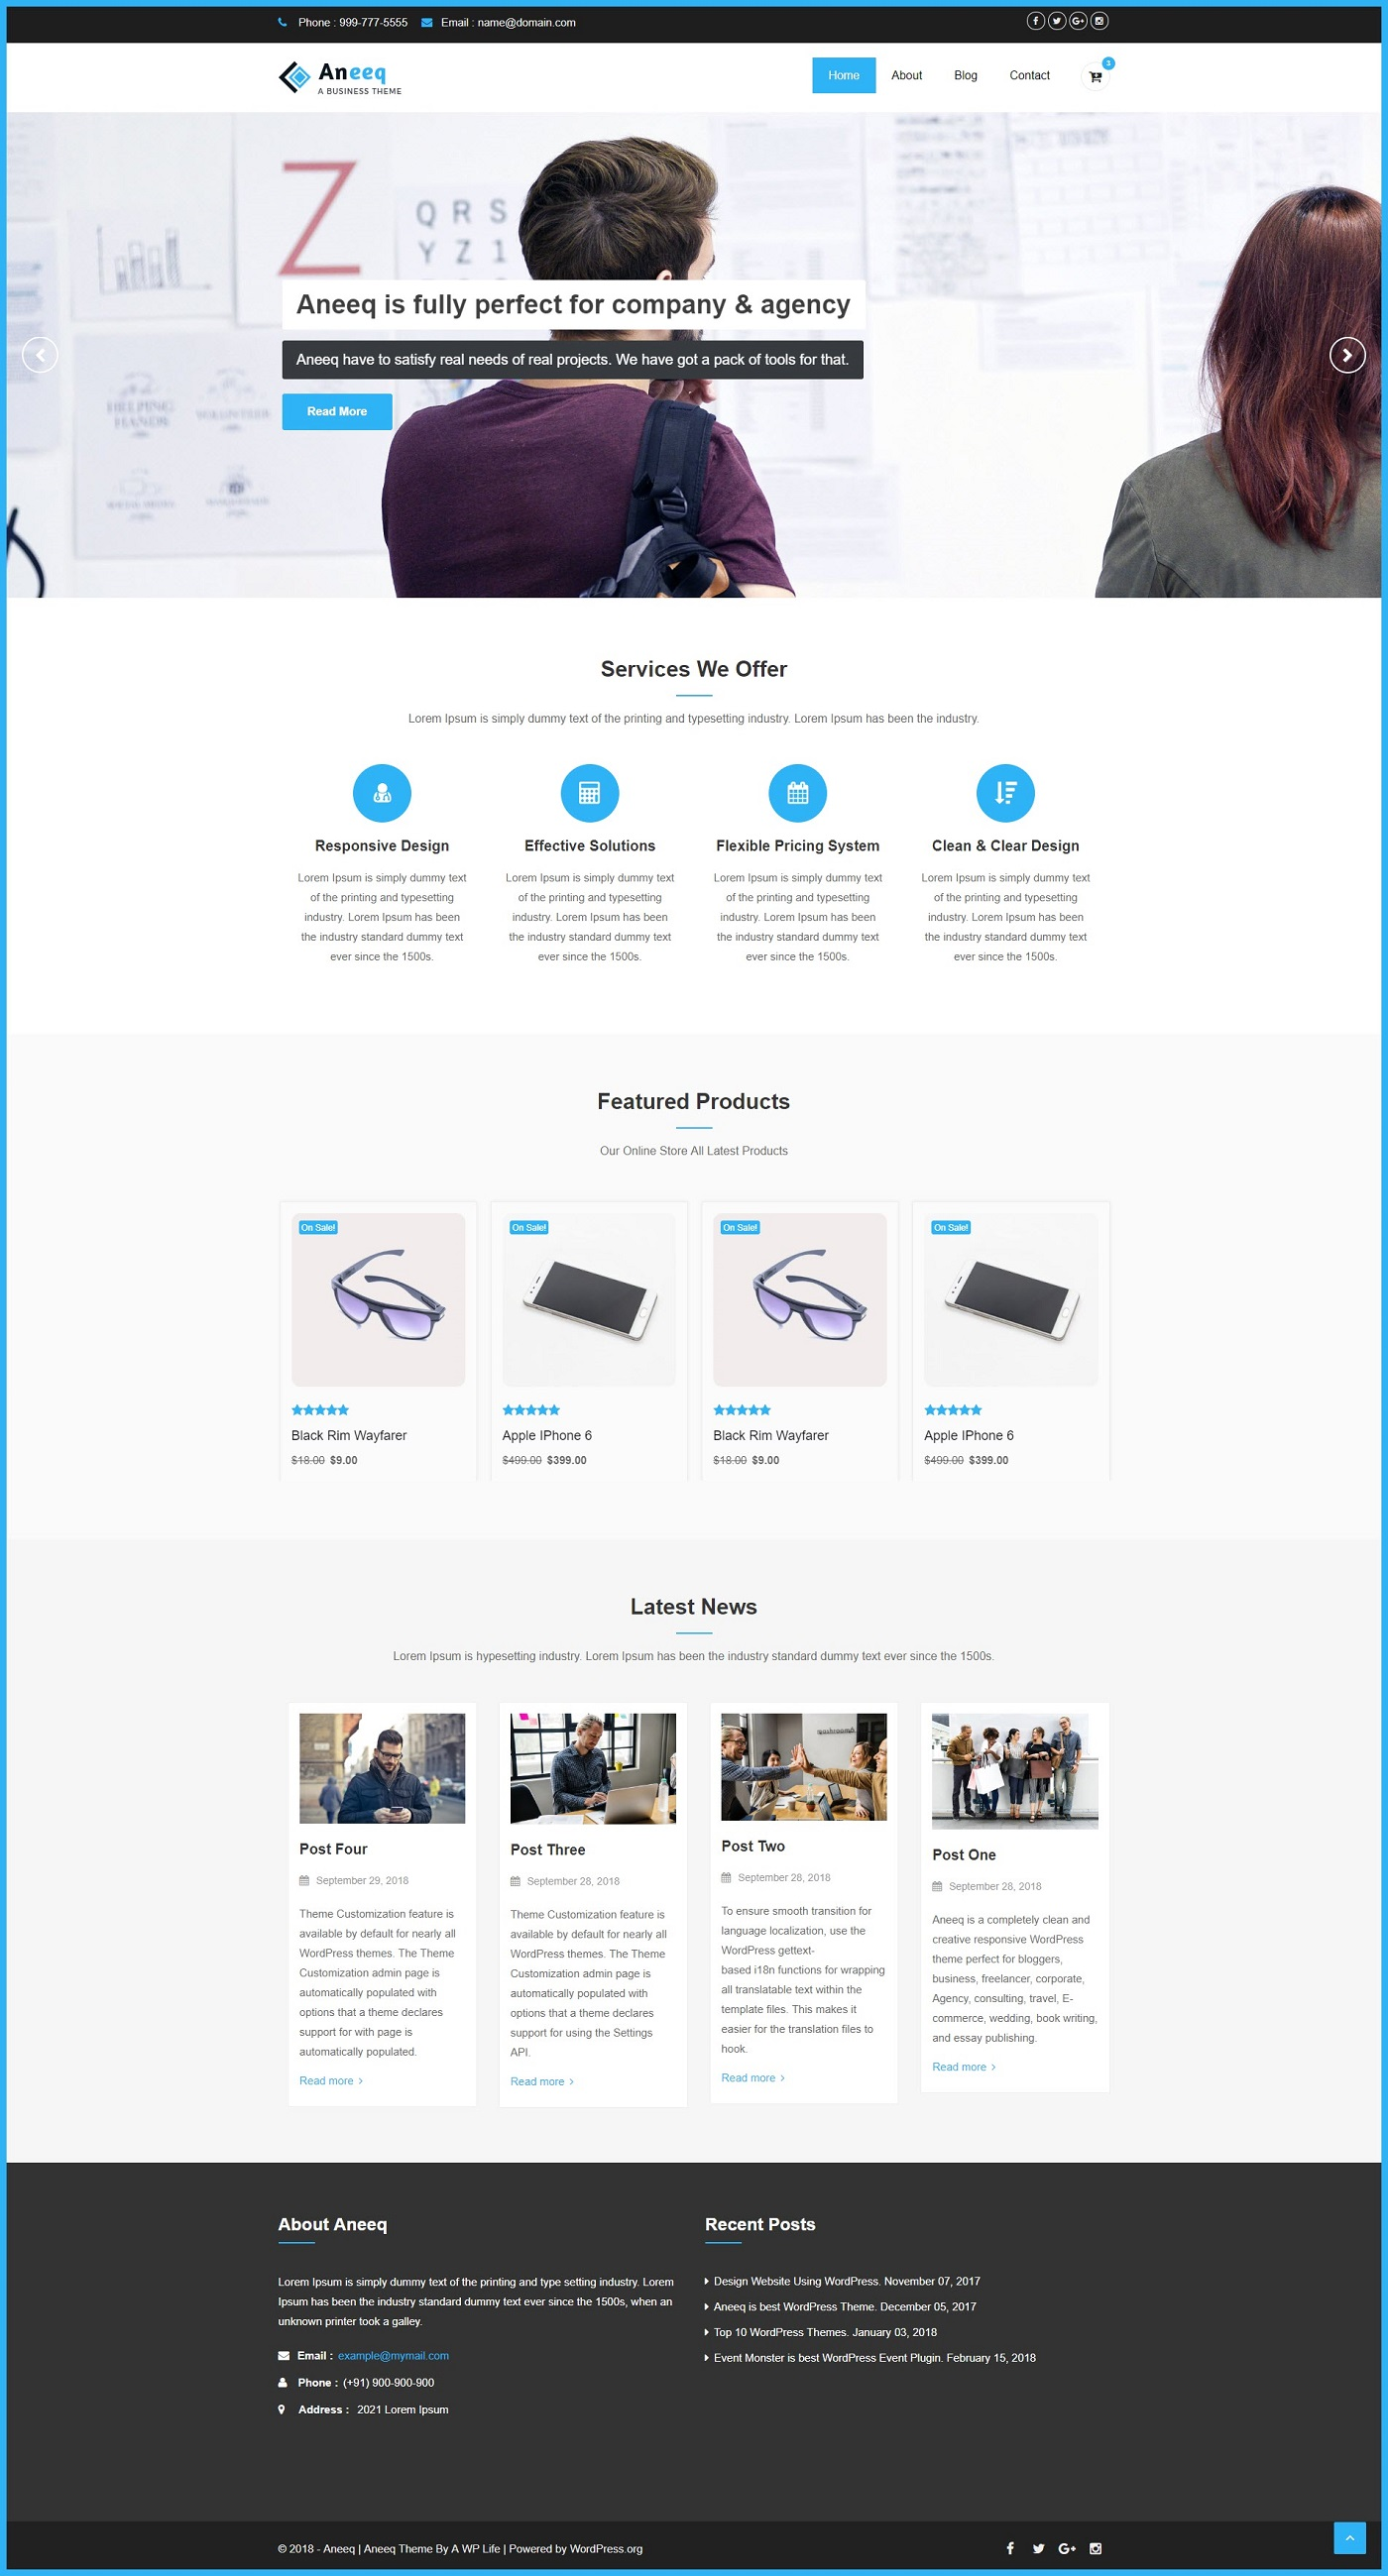 aneeq-wordpress-theme-homepage-final-preview